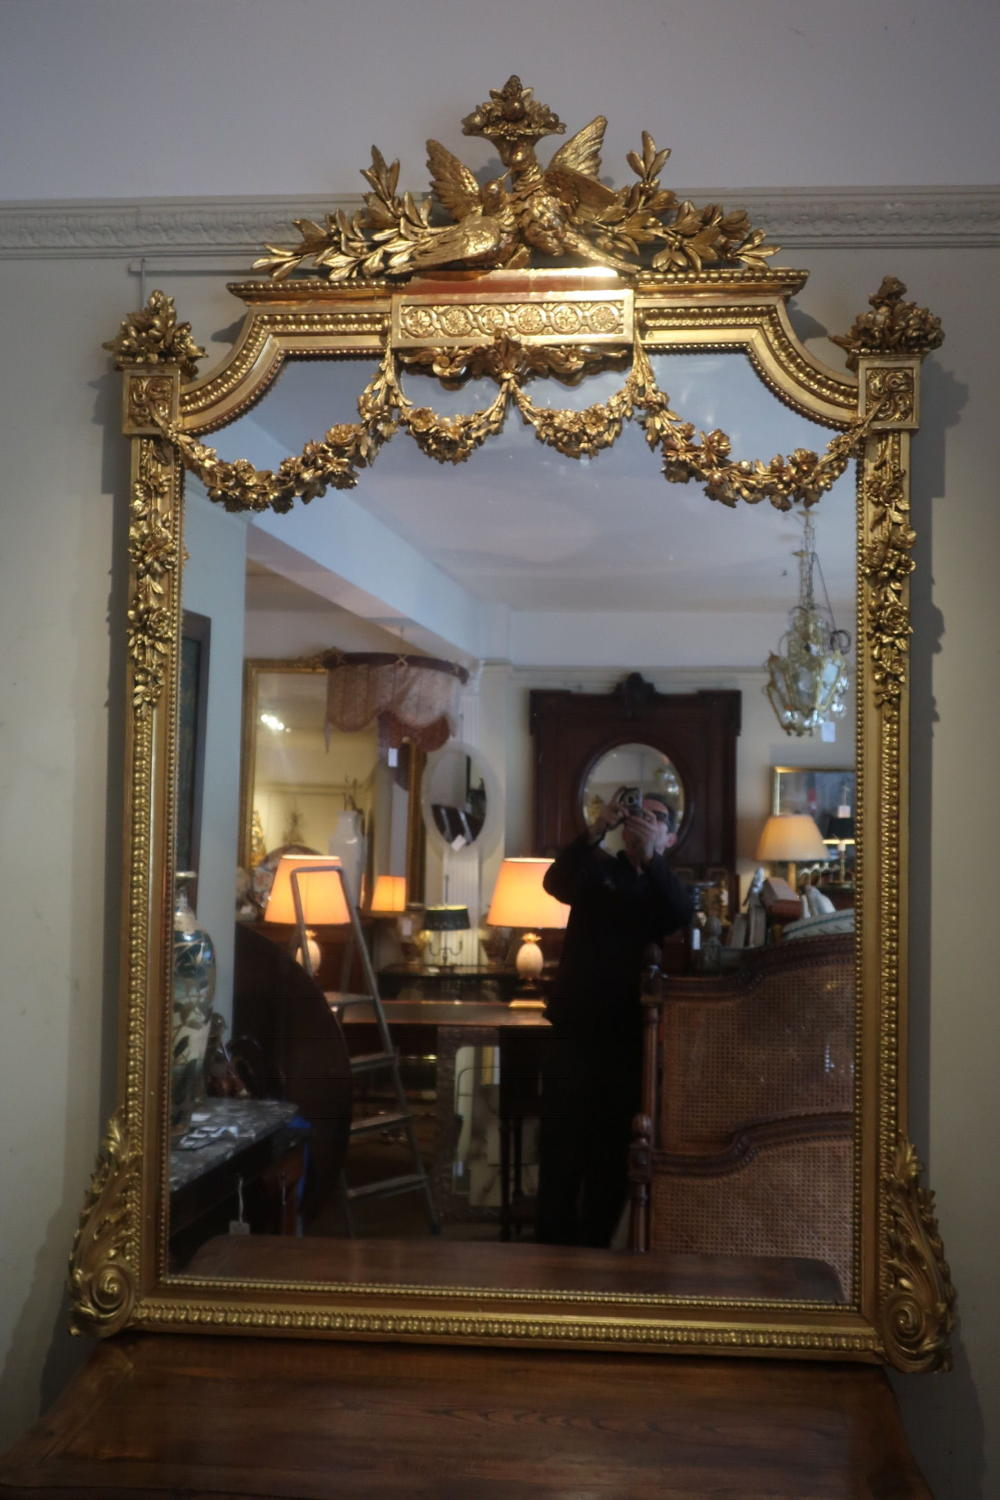 Large gilt mirror